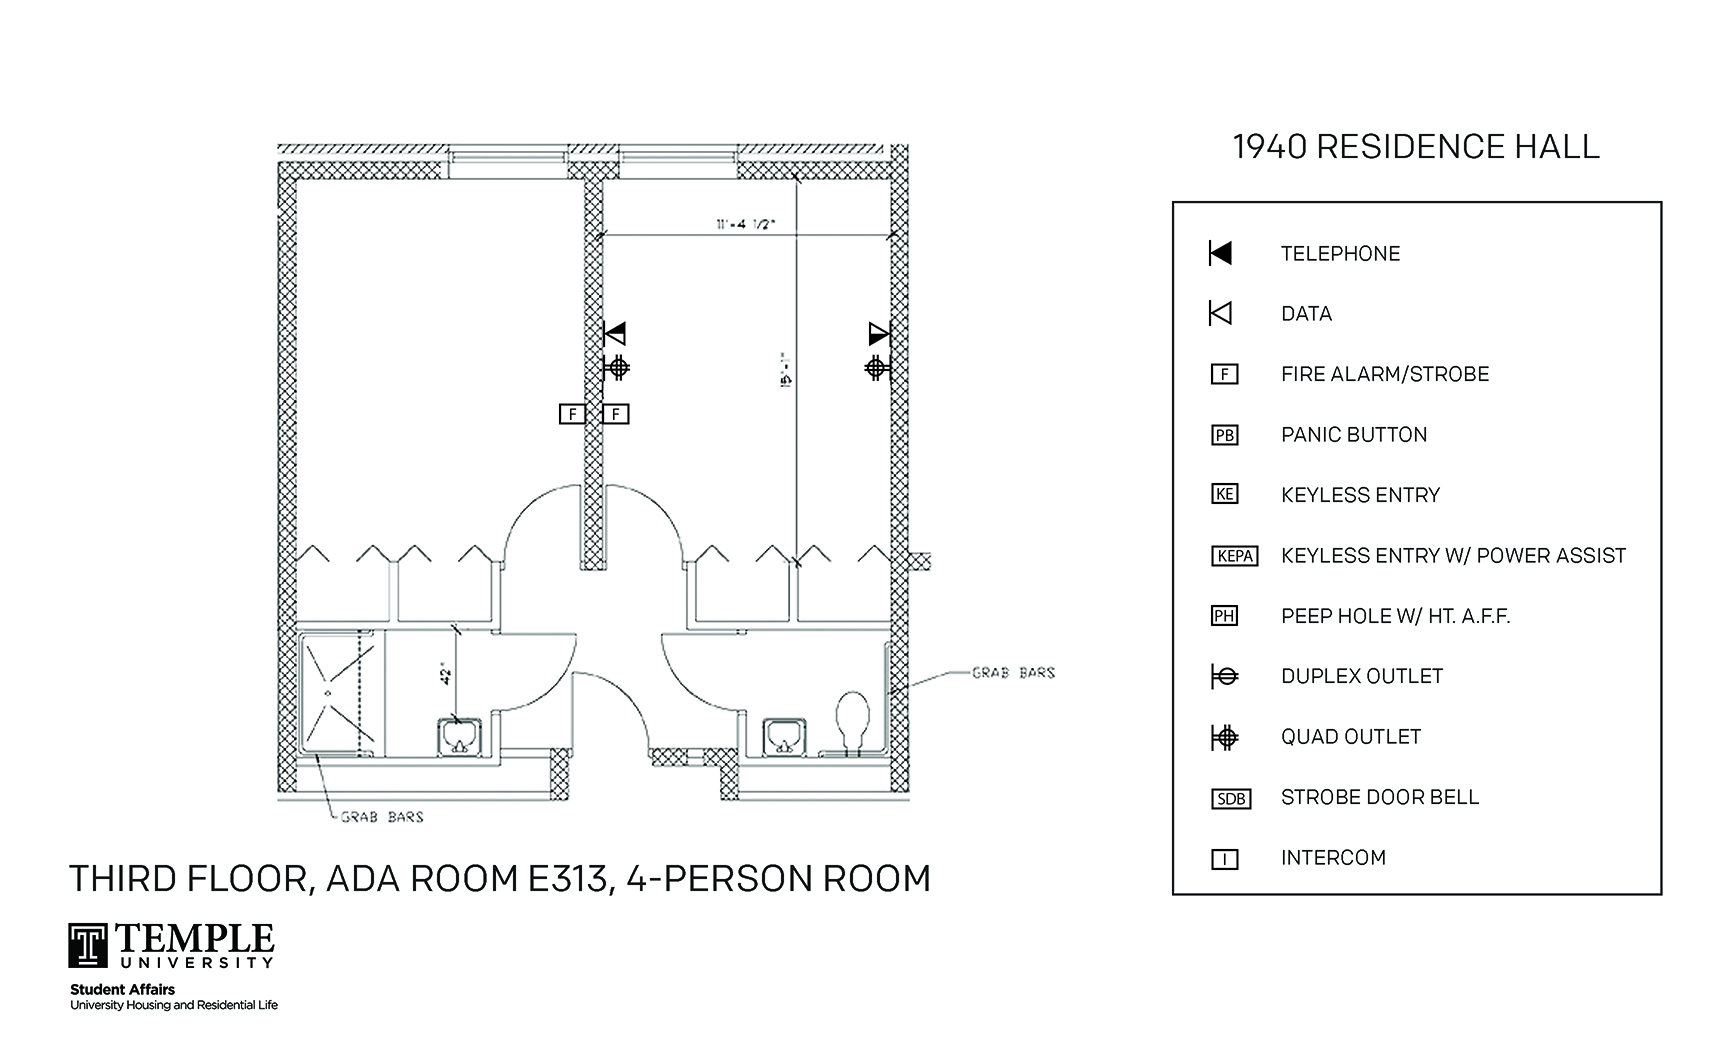 Accessible Room Diagrams: 4 person, 2 bedroom Suite - E313